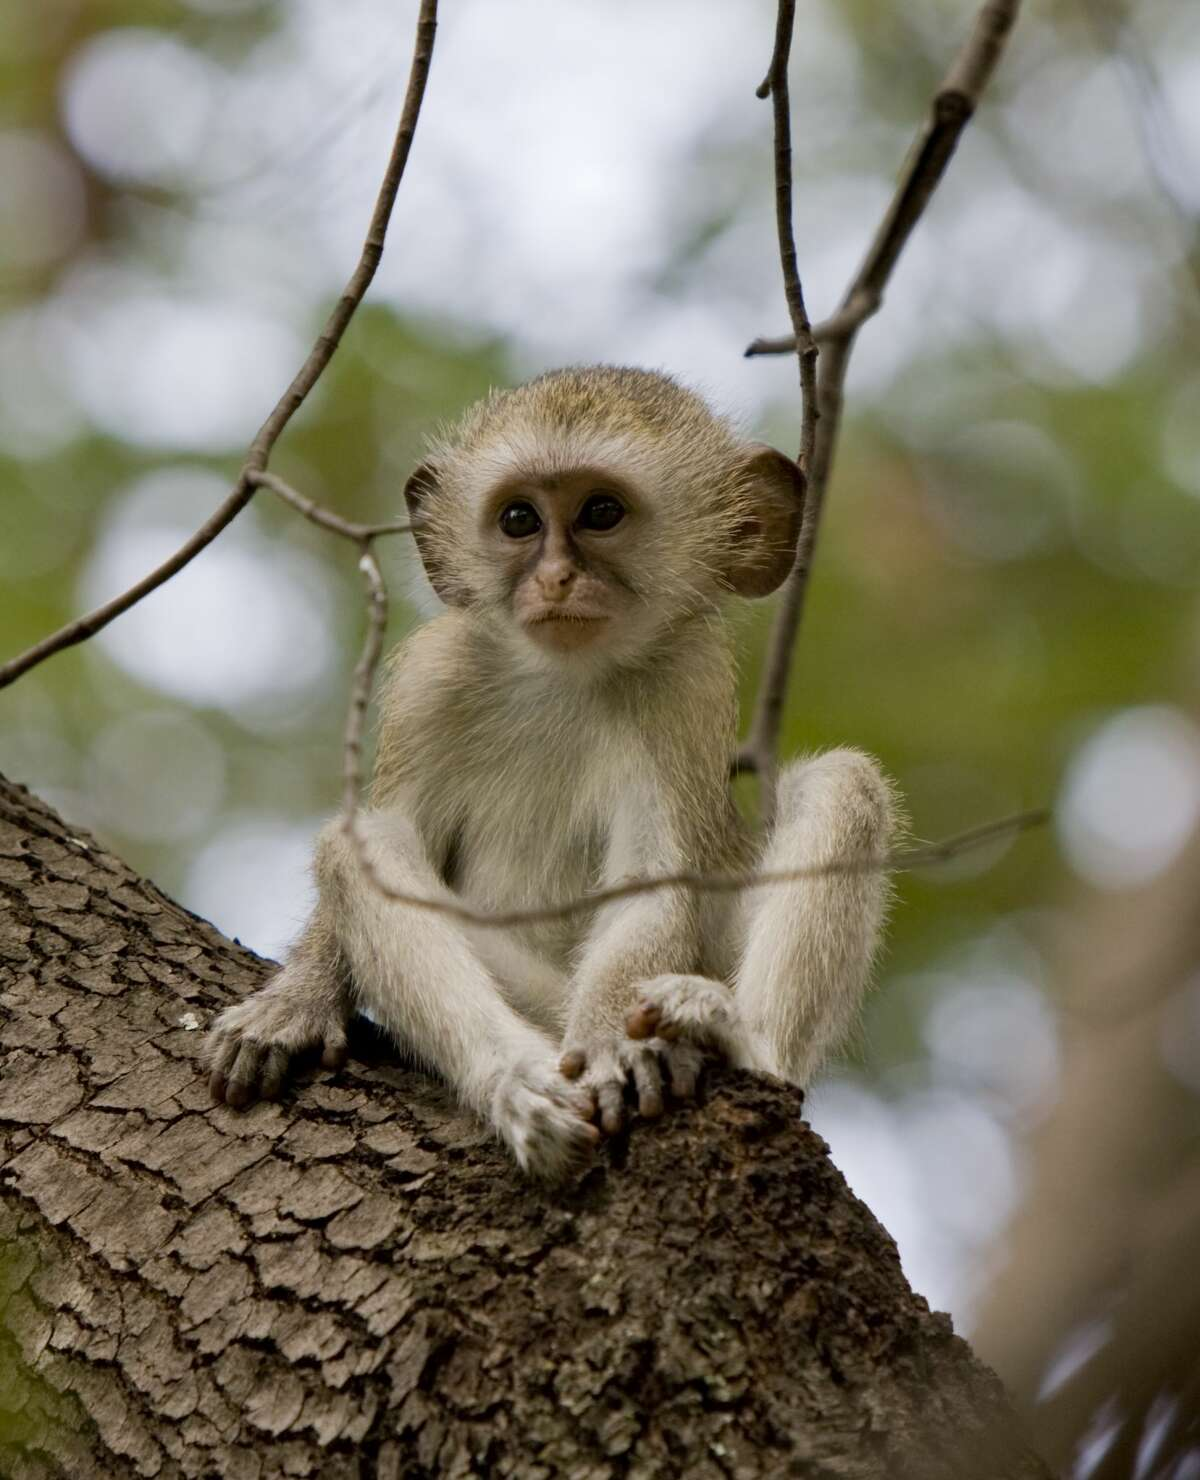 South Houston A monkey that reportedly attacked two people in July in South Houston was never found. The monkey (not pictured here; this is a file image) jumped into the vehicle of a man who was trying to take a photo and injured the driver and his granddaughter.